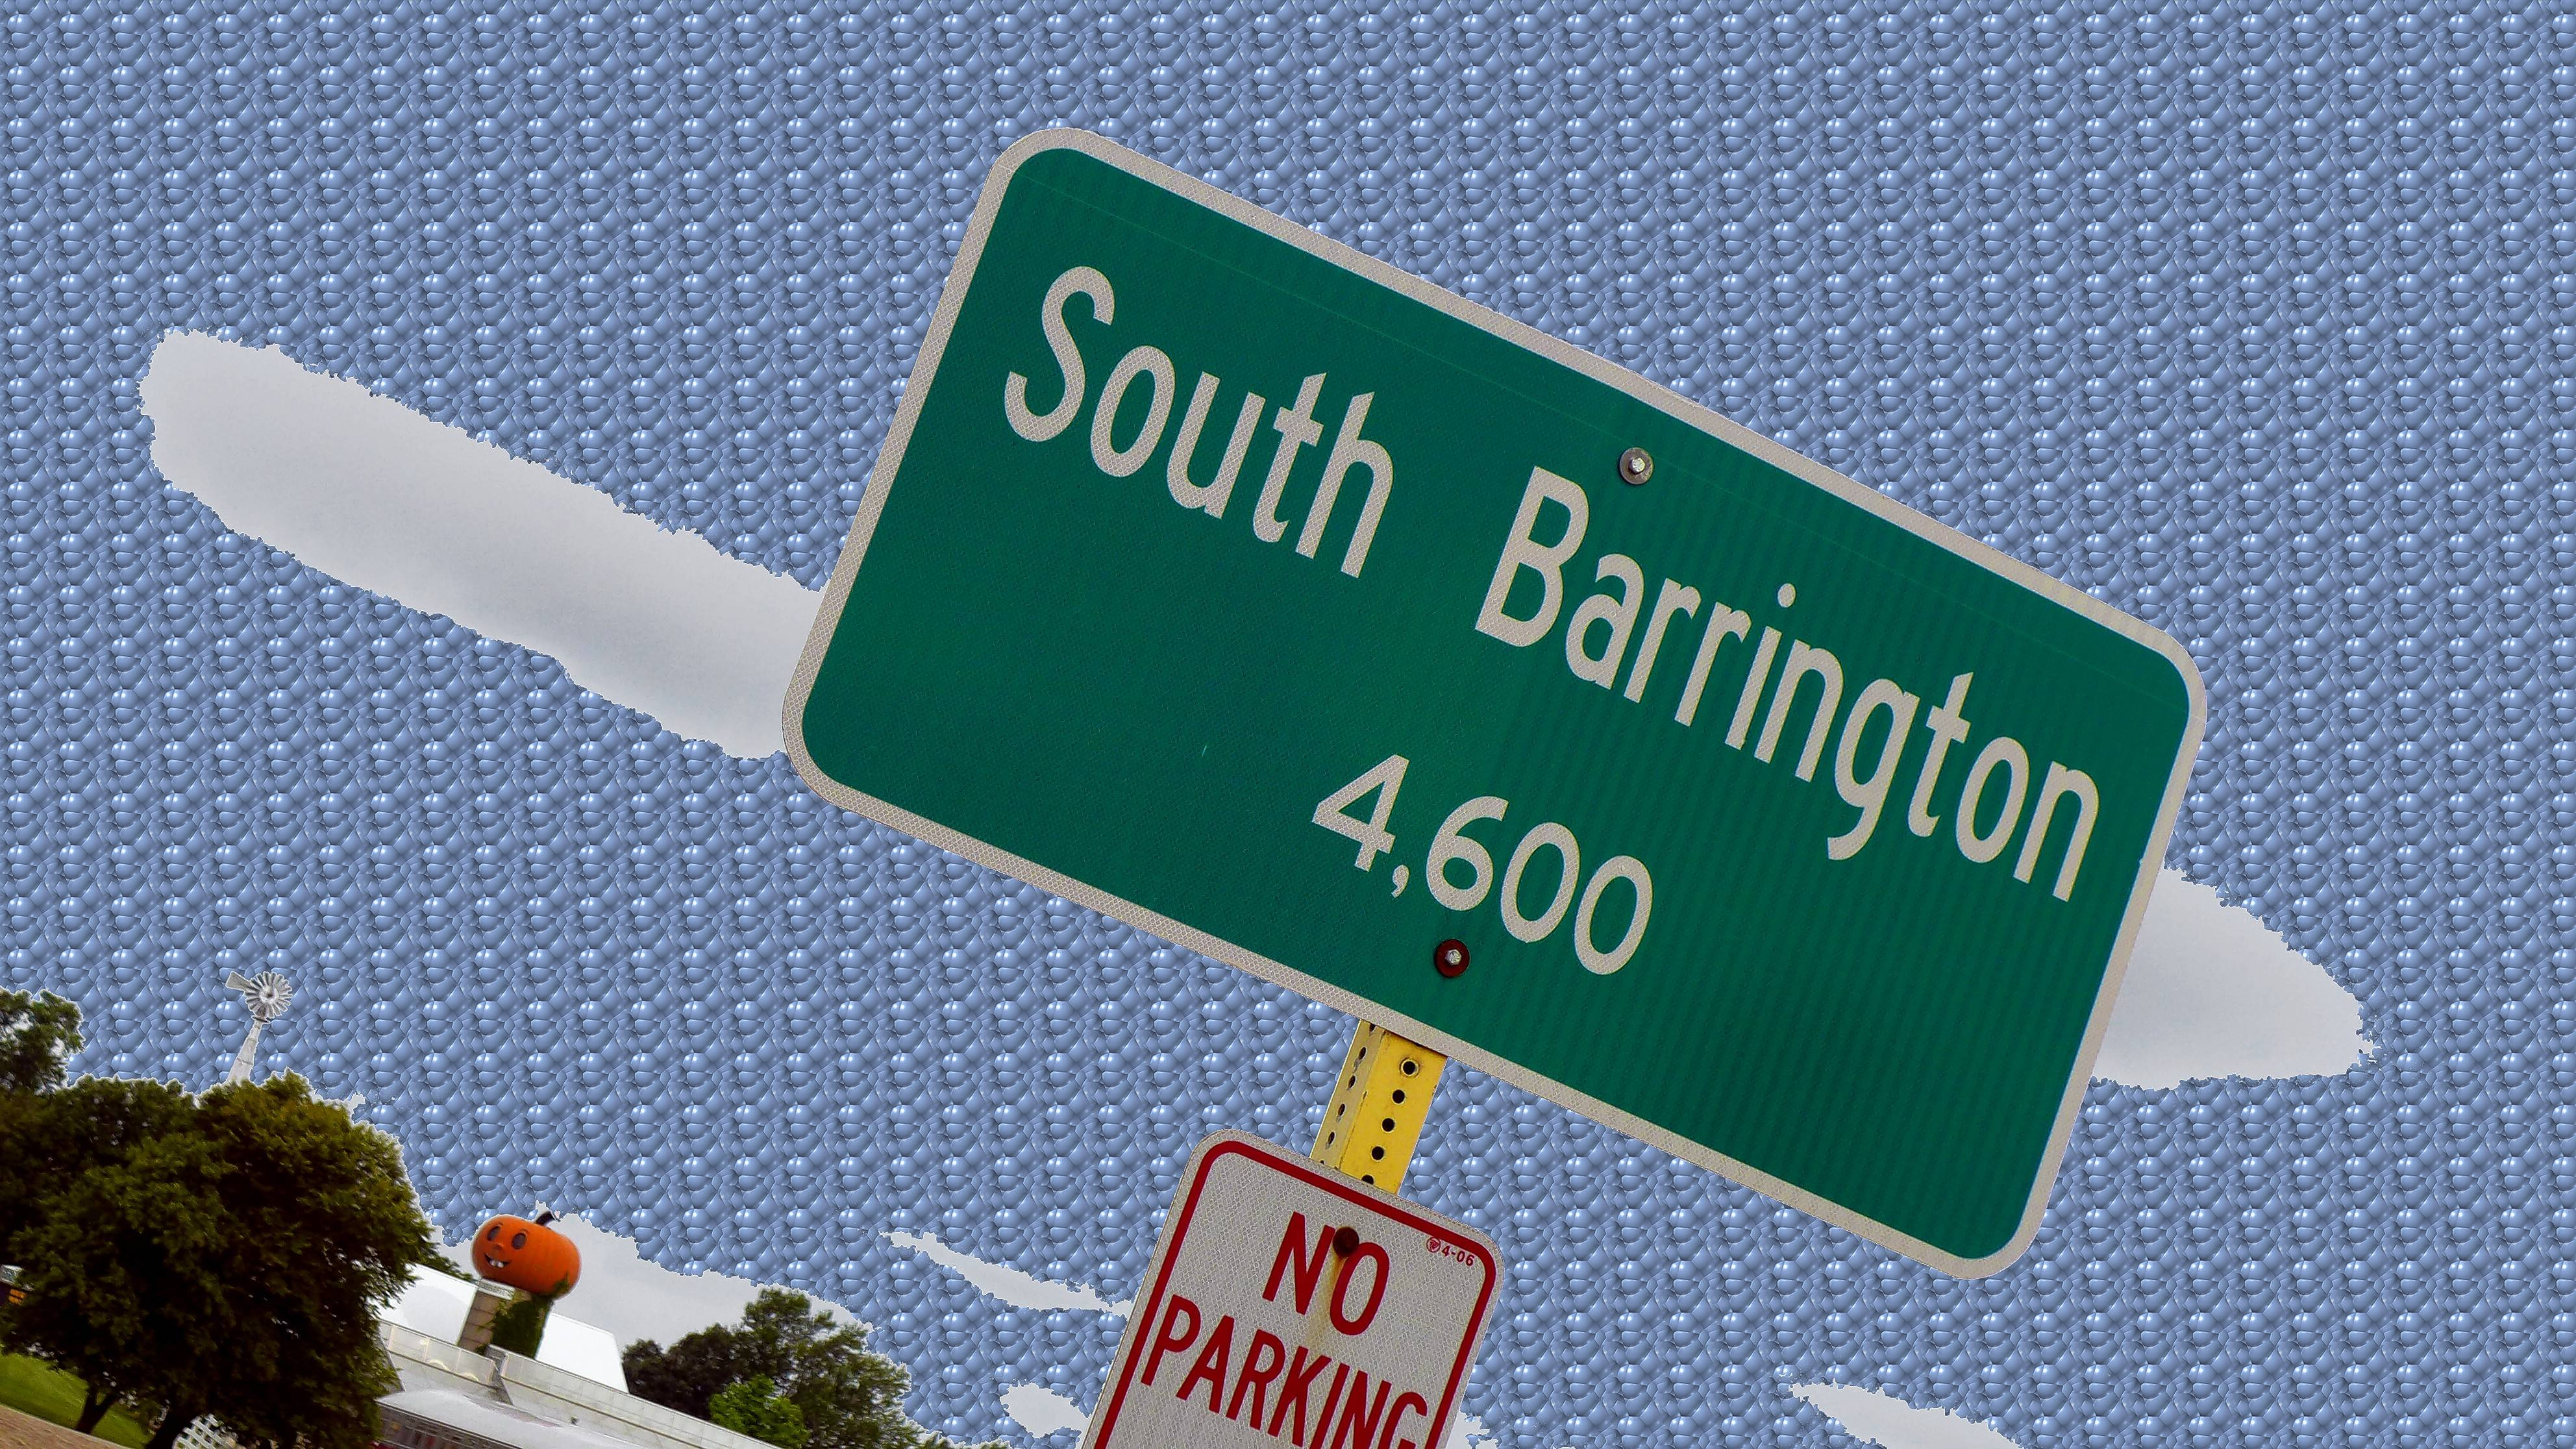 Incorporated in December, 1959, the Village of South Barrington consists of 7.619 square miles of which 7.34 square miles are land and .279 square miles are water. As of the 2010 census, the median income for a household in the village was $170,755, and the median income for a family was $174,318.